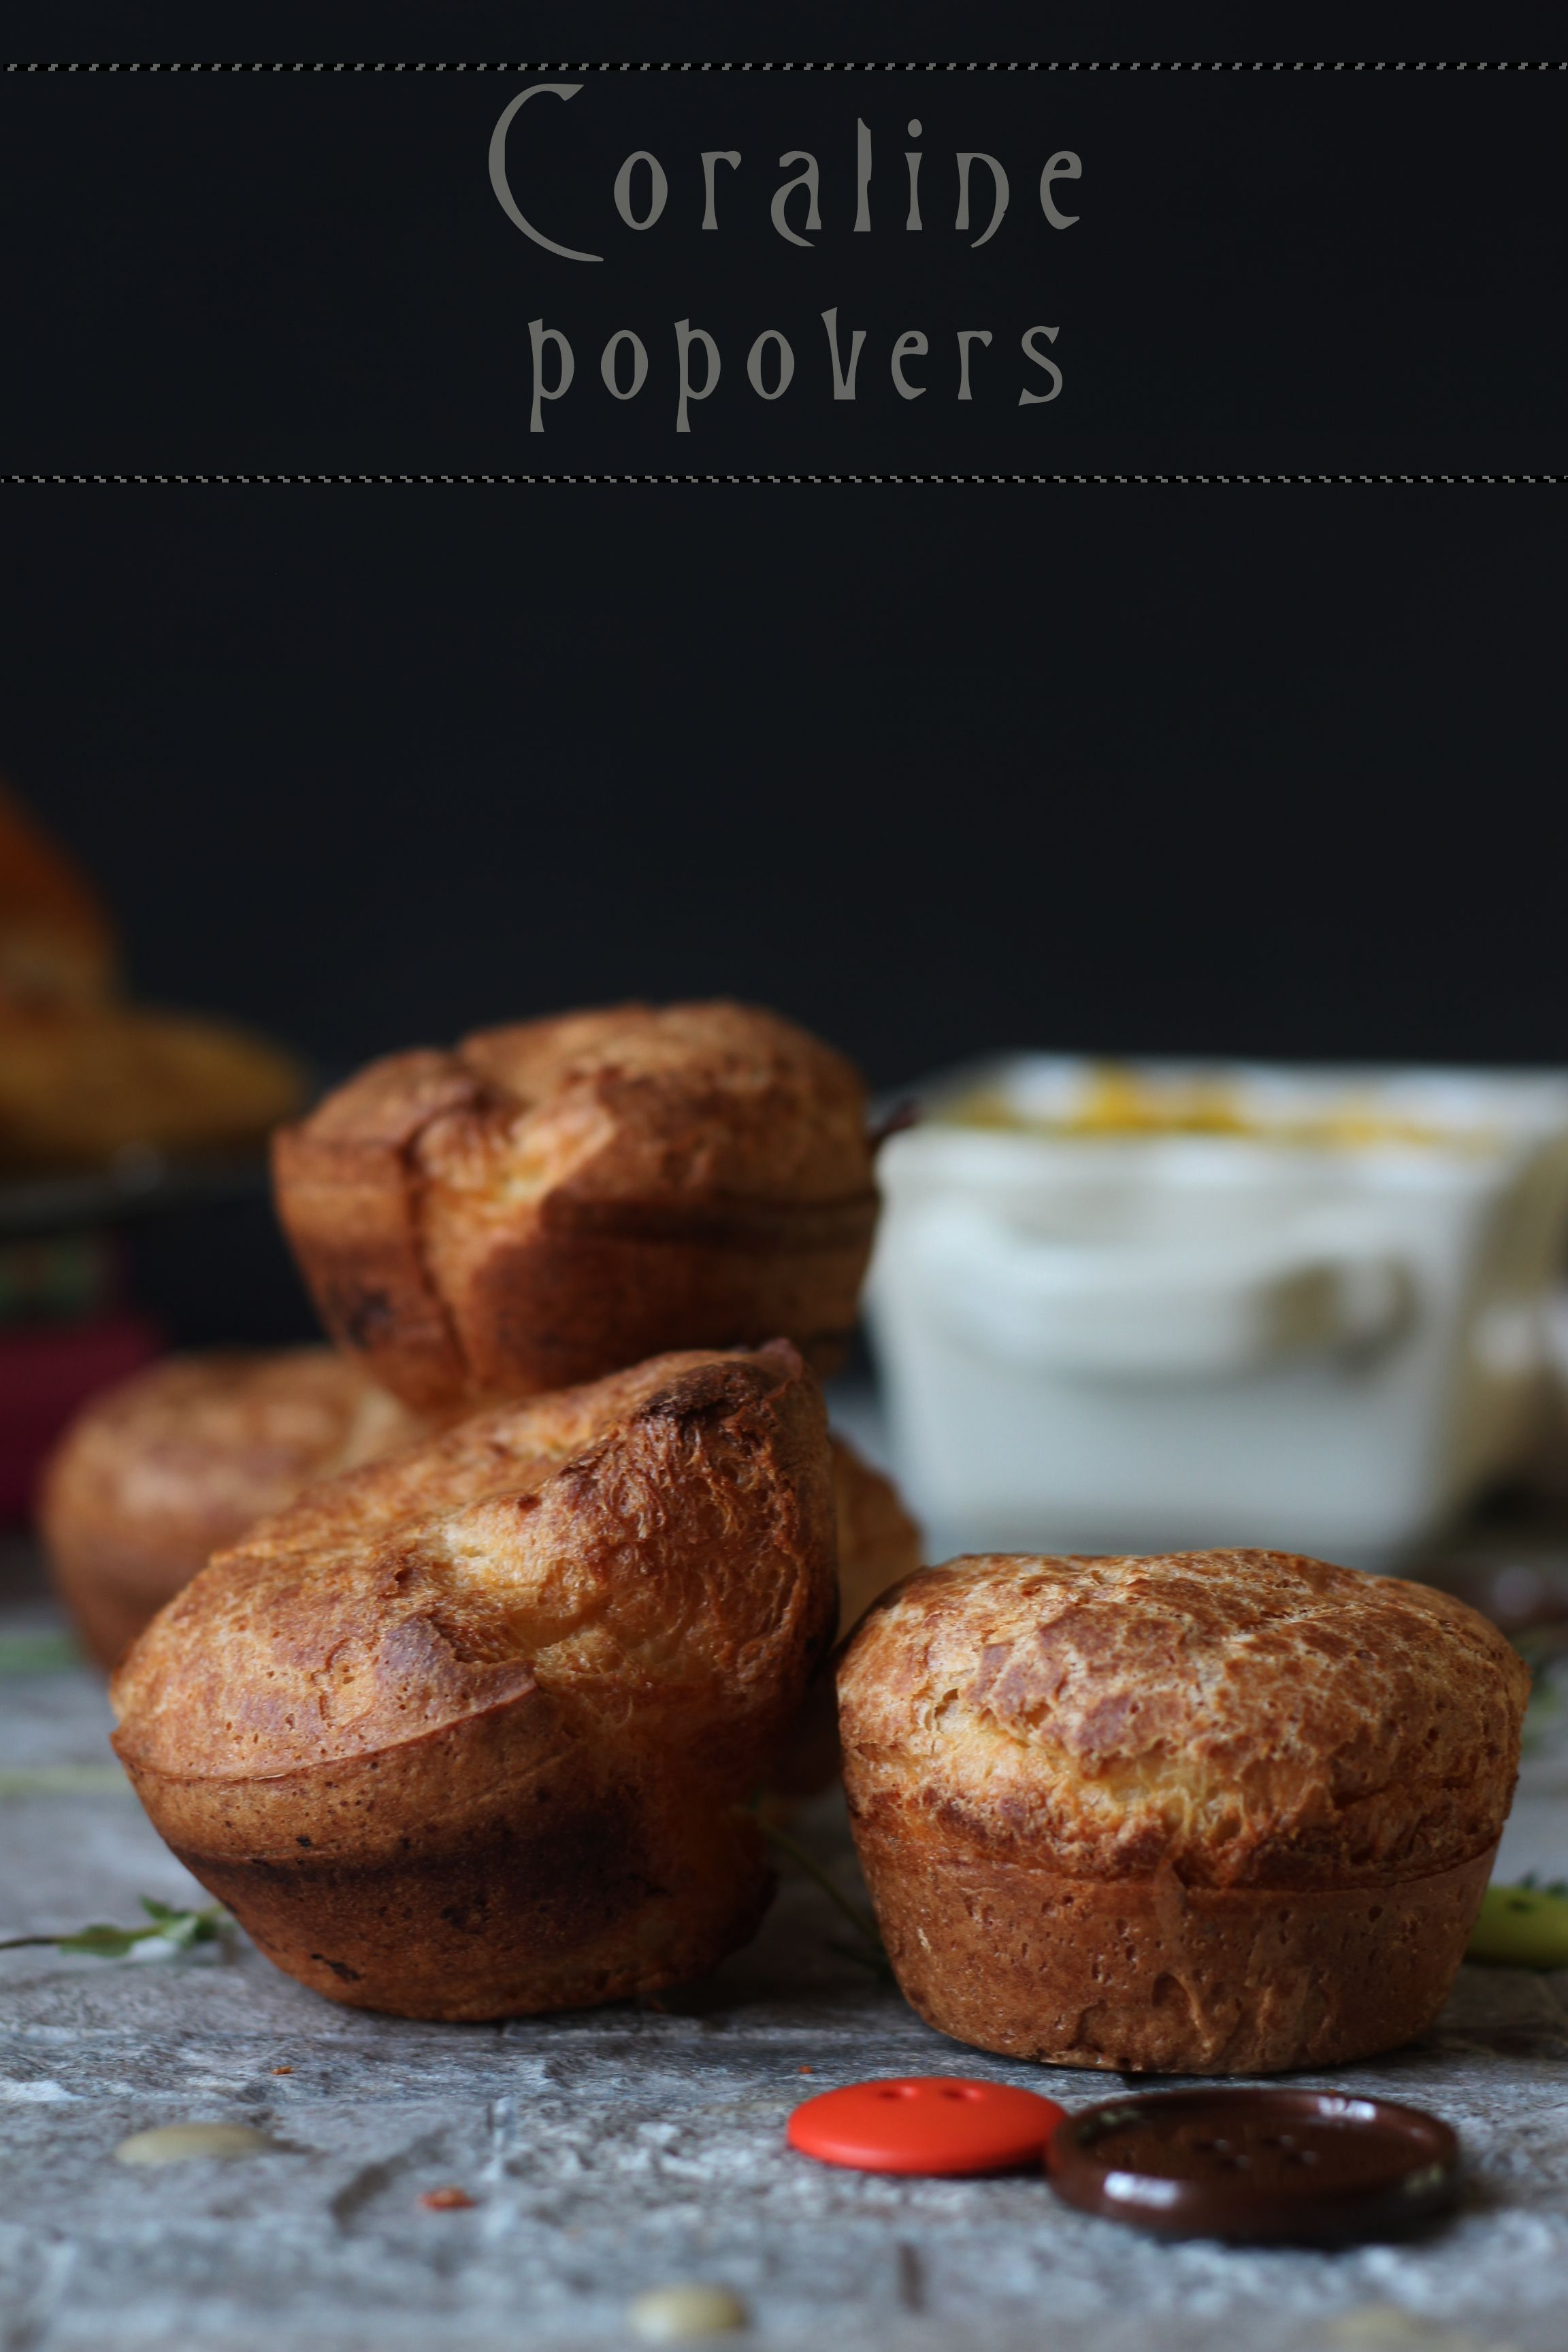 Coraline Popovers Feast Of Starlight Welcome Home Cakes Food Popovers